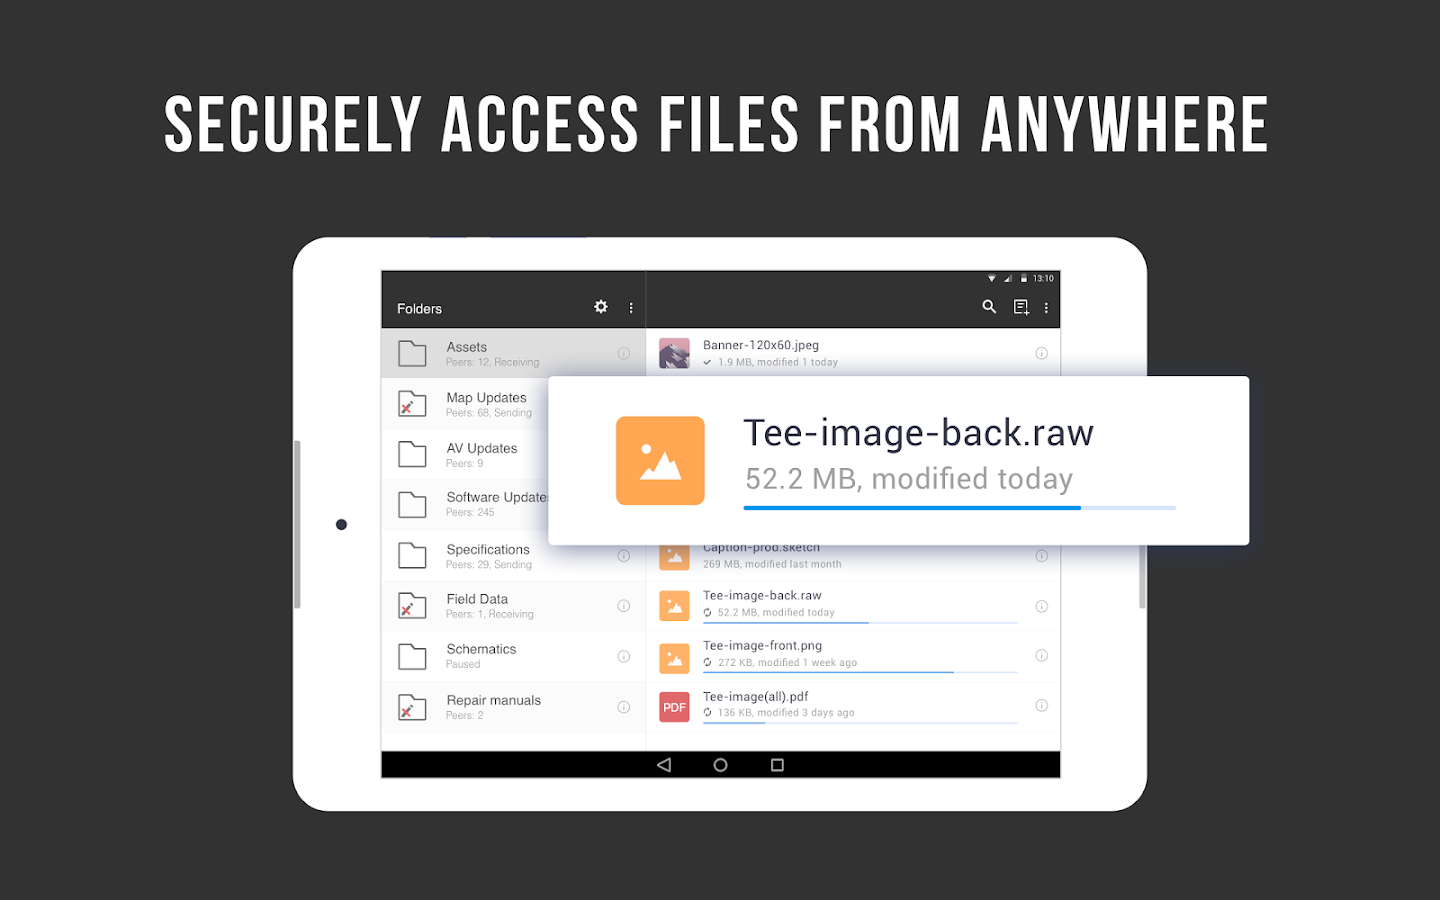 Files can be accessed on any device through the Android and iOS apps